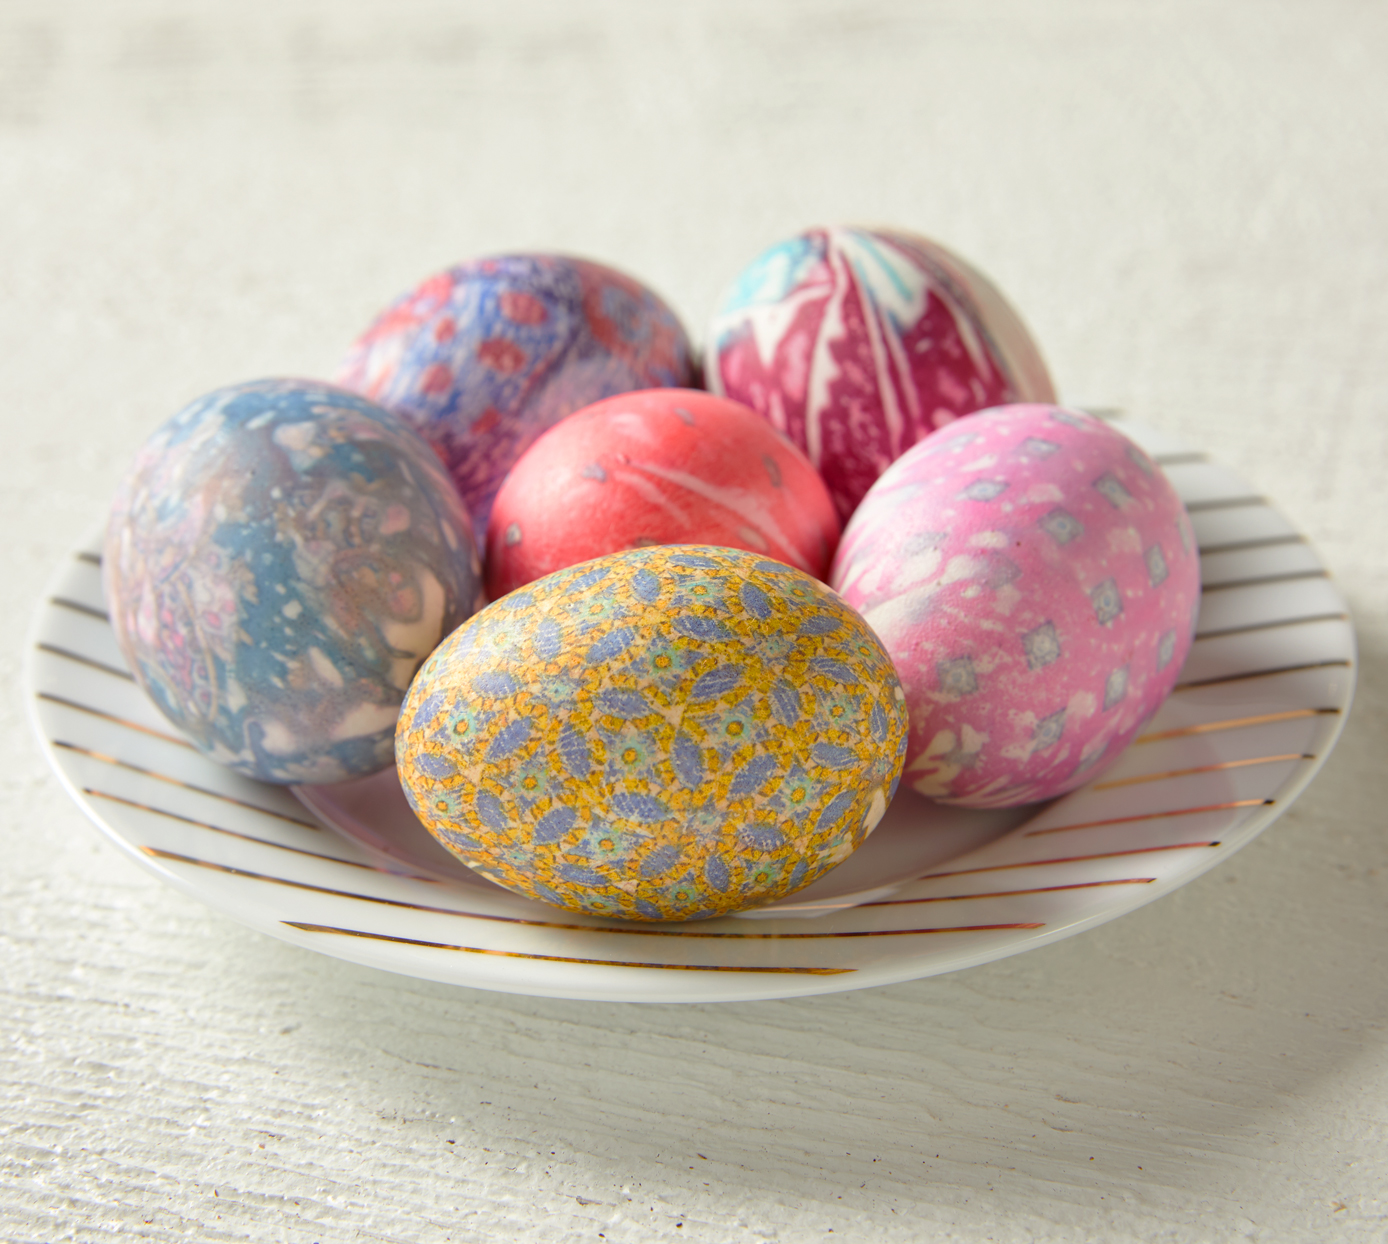 10 Creative Ways to Dye Easter Eggs  Better Homes & Gardens